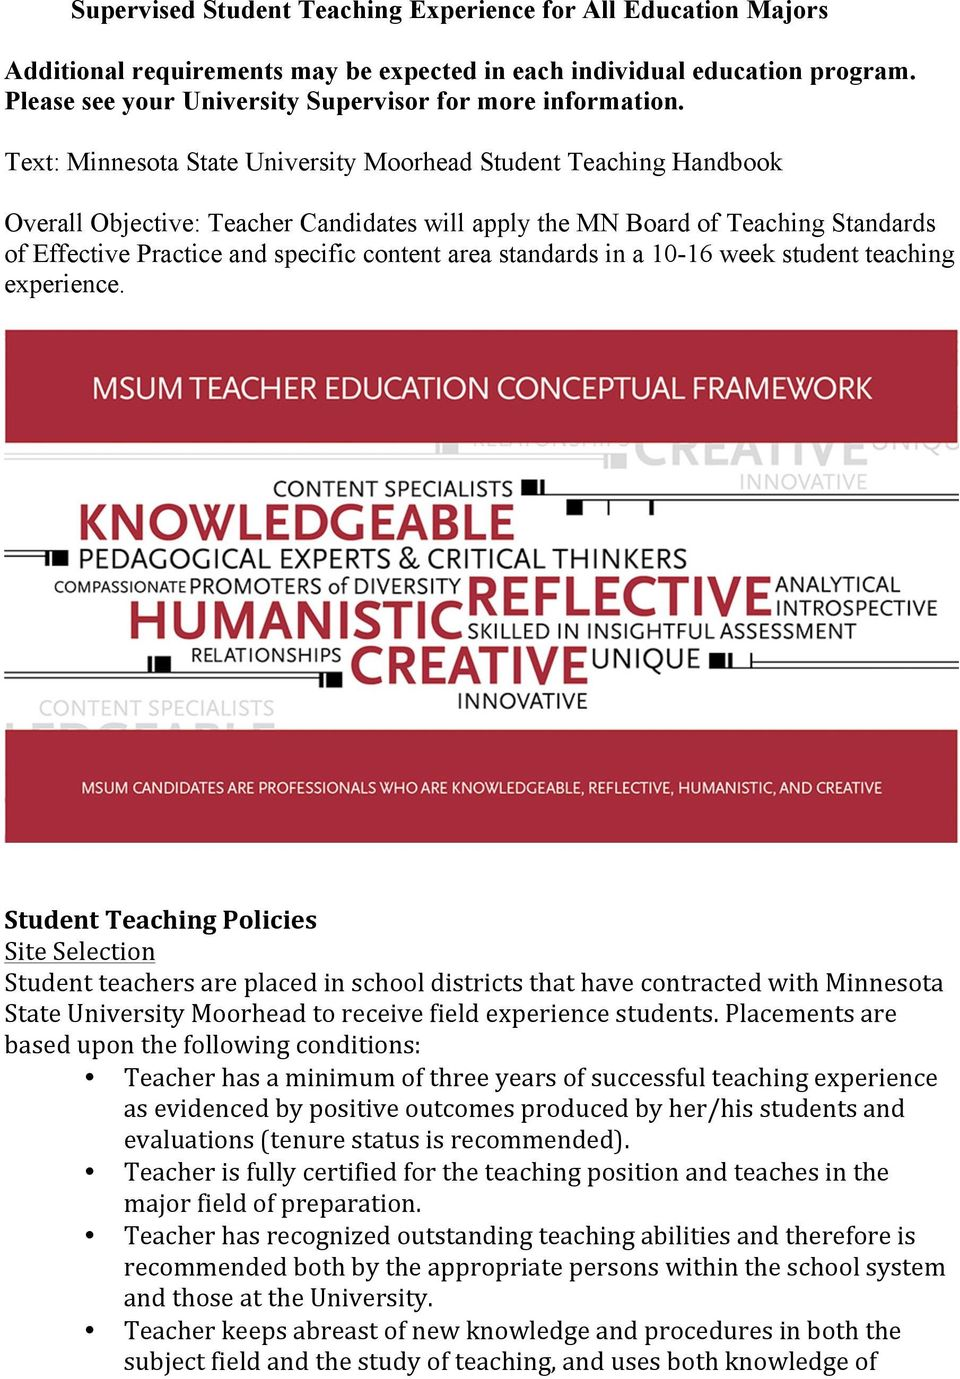 Supervised Student Teaching Experience for All Education Majors - PDF